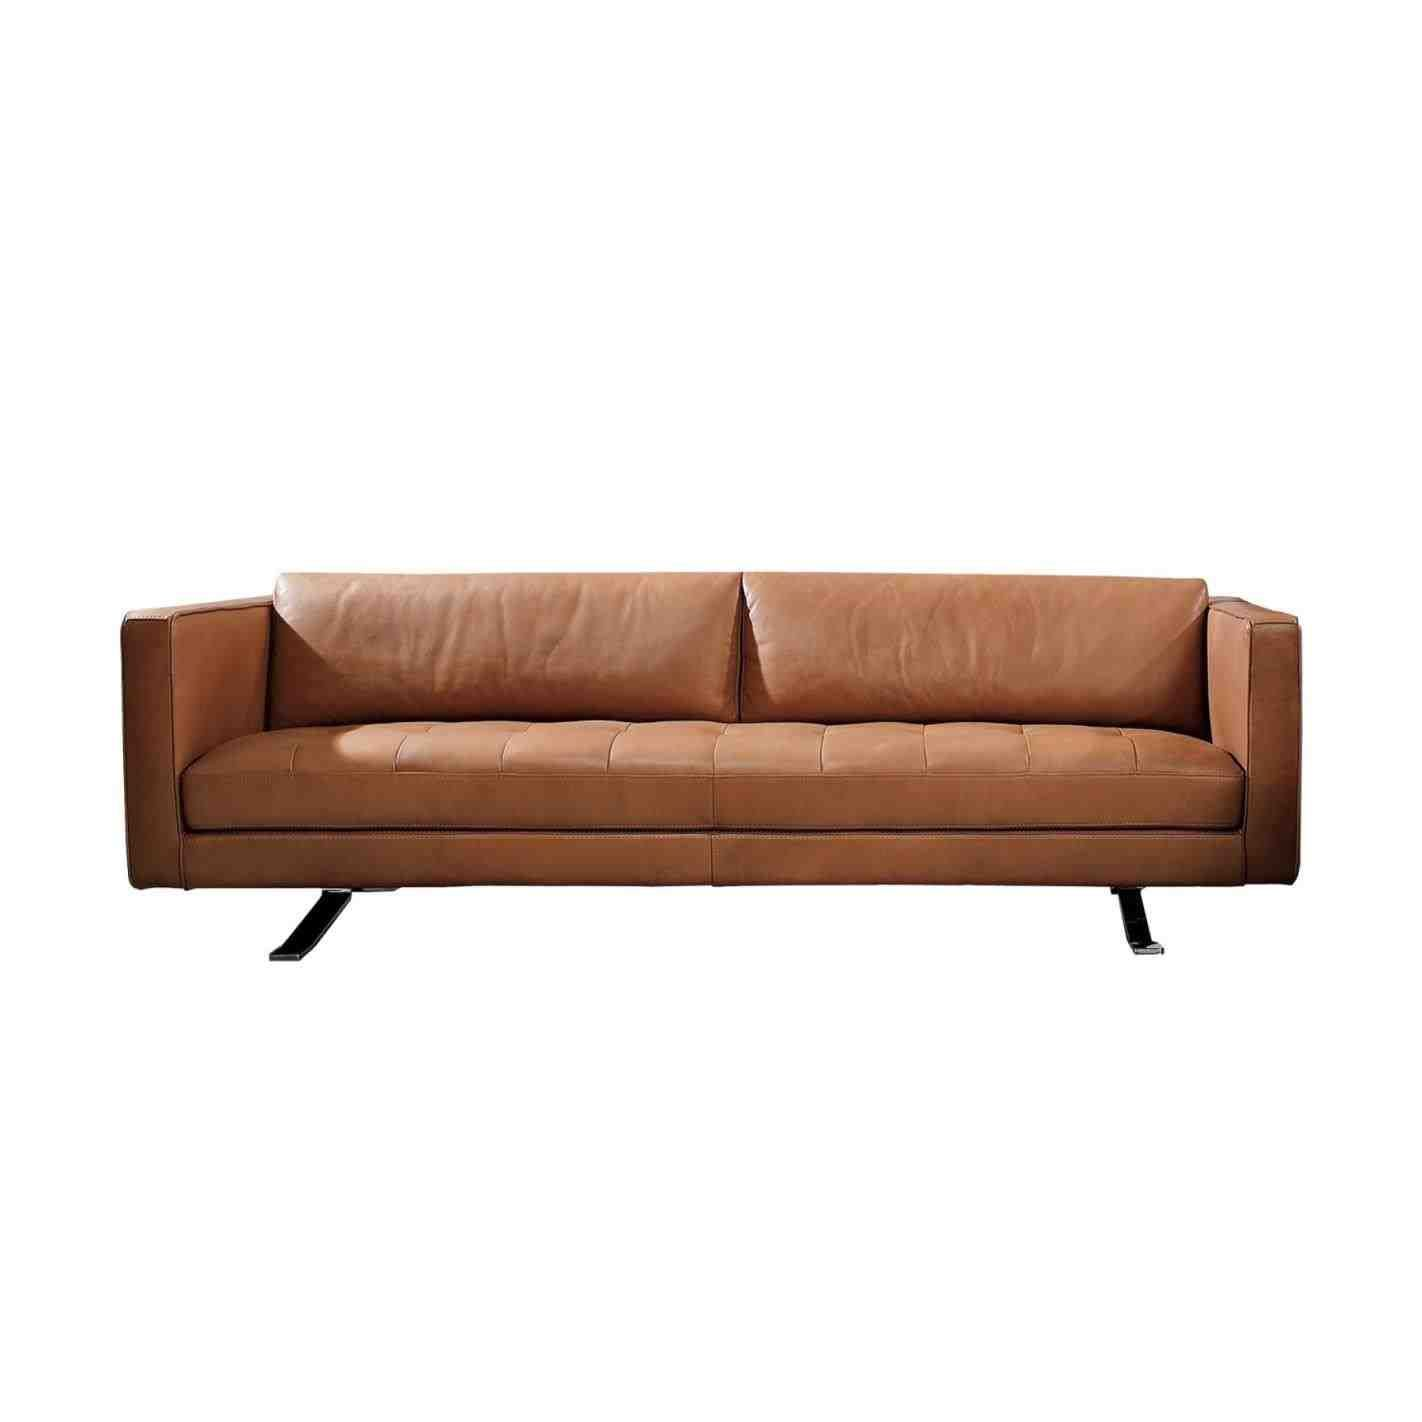 Best Cheap Leather Sofas Sydney Interior Sofa Bed For Sale 400 x 300